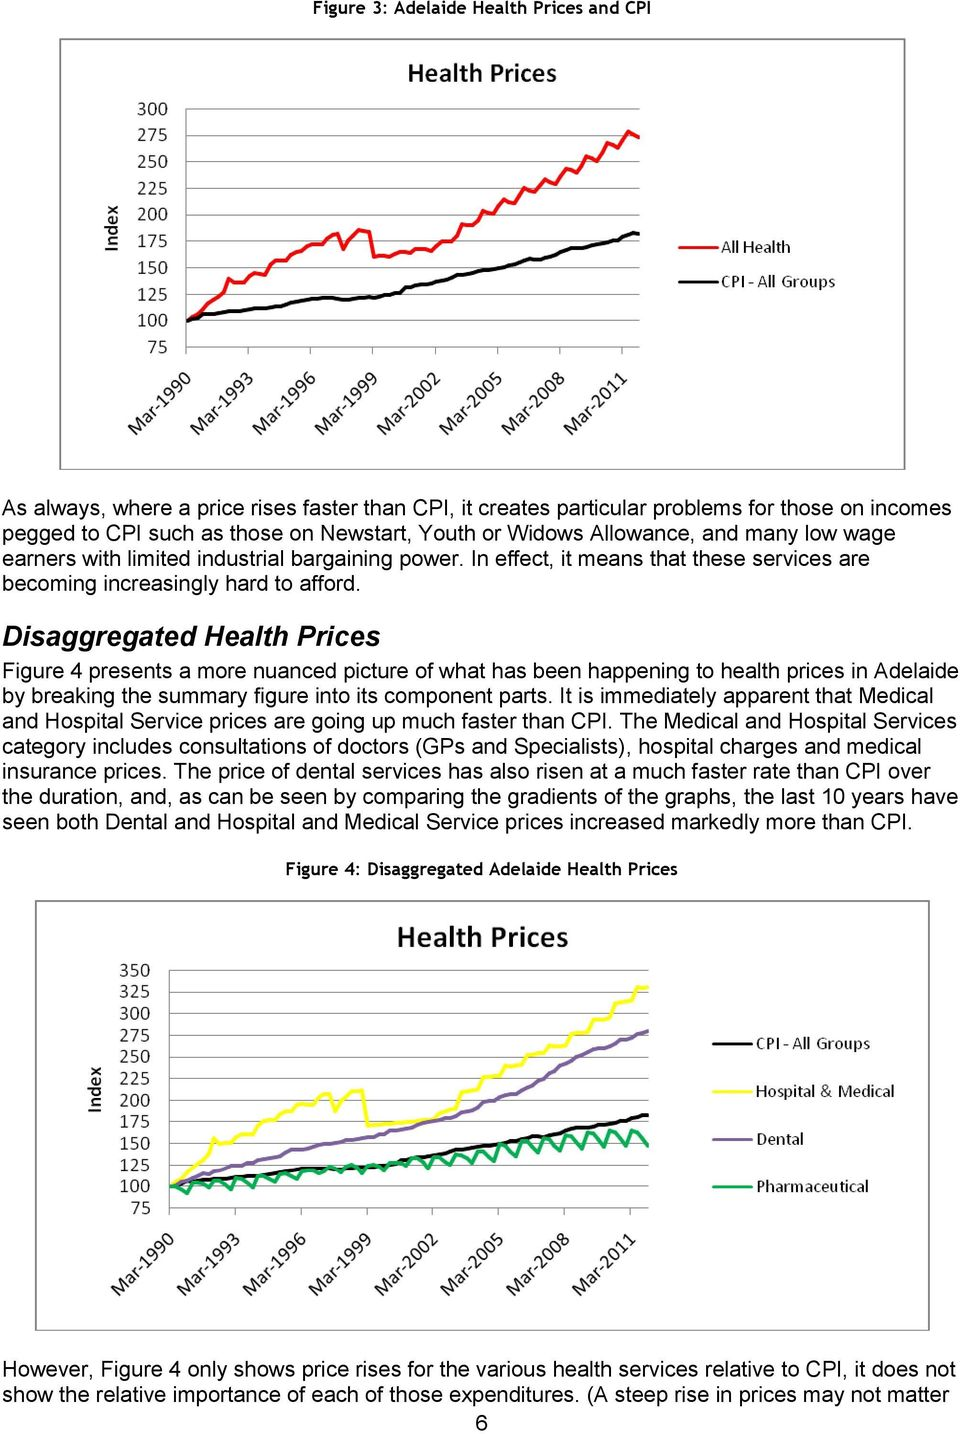 Disaggregated Health Prices Figure 4 presents a more nuanced picture of what has been happening to health prices in Adelaide by breaking the summary figure into its component parts.